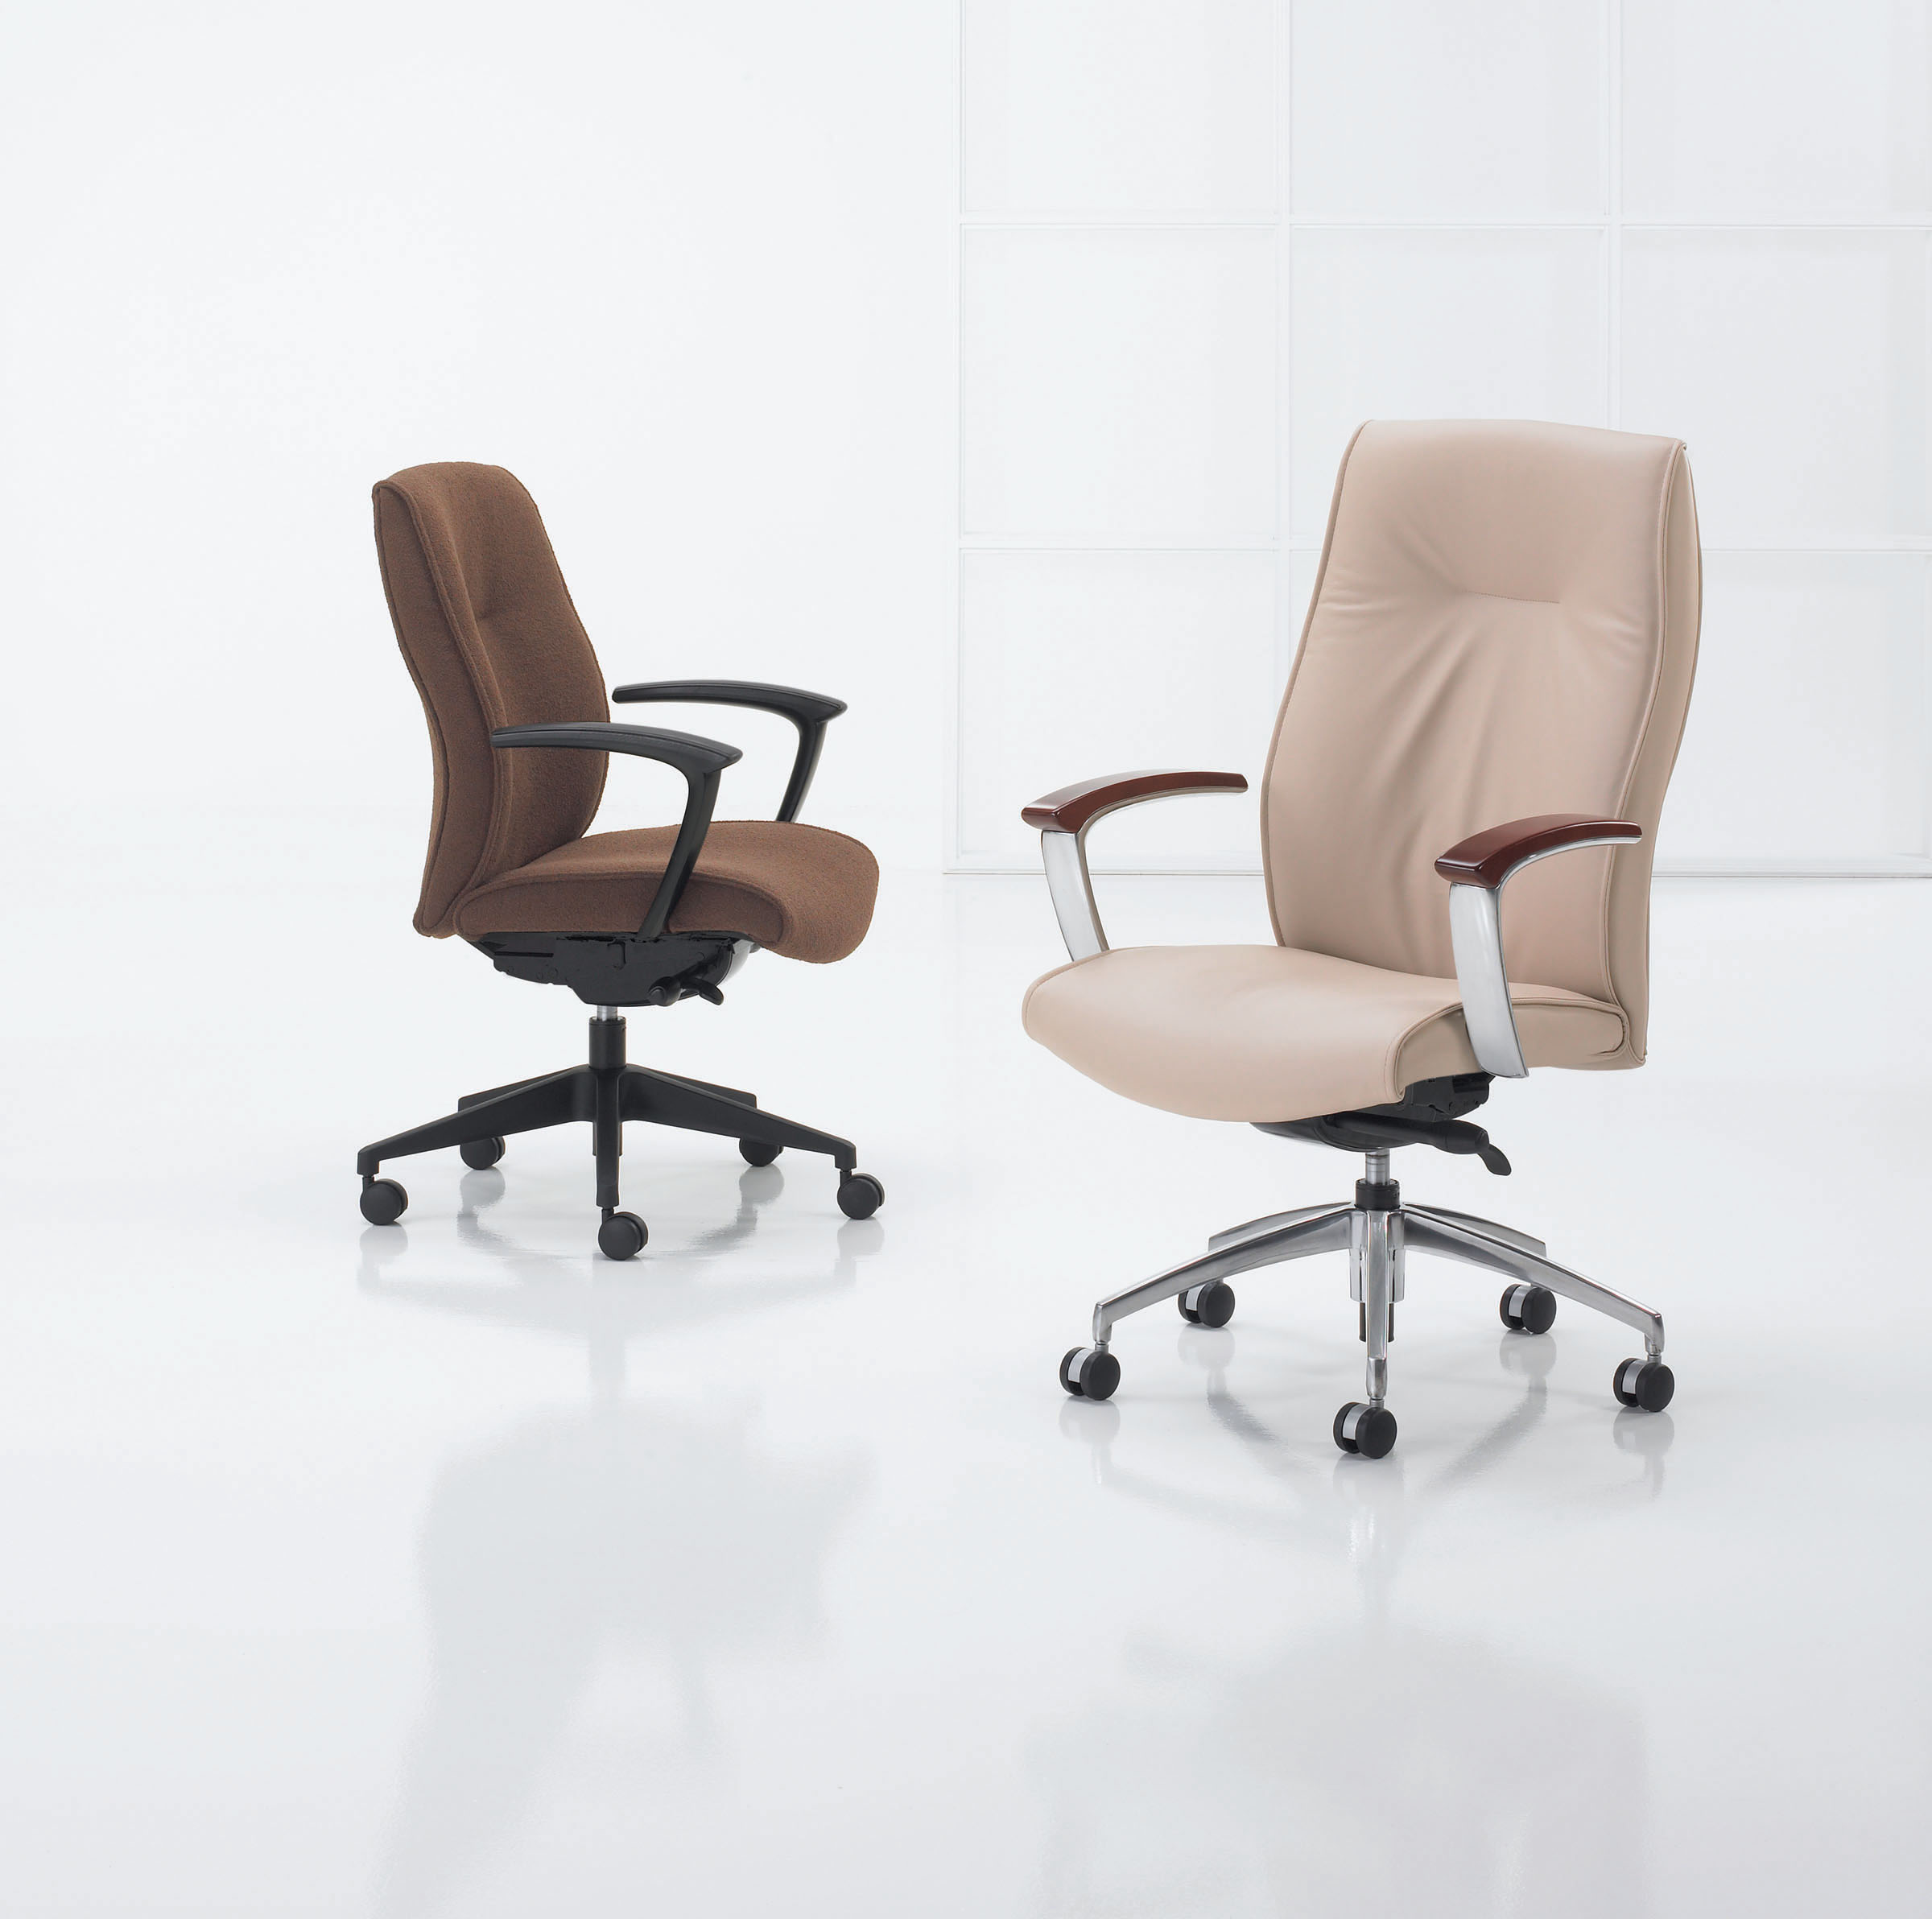 las vegas office chairs low seating and chair virginia maryland dc executive